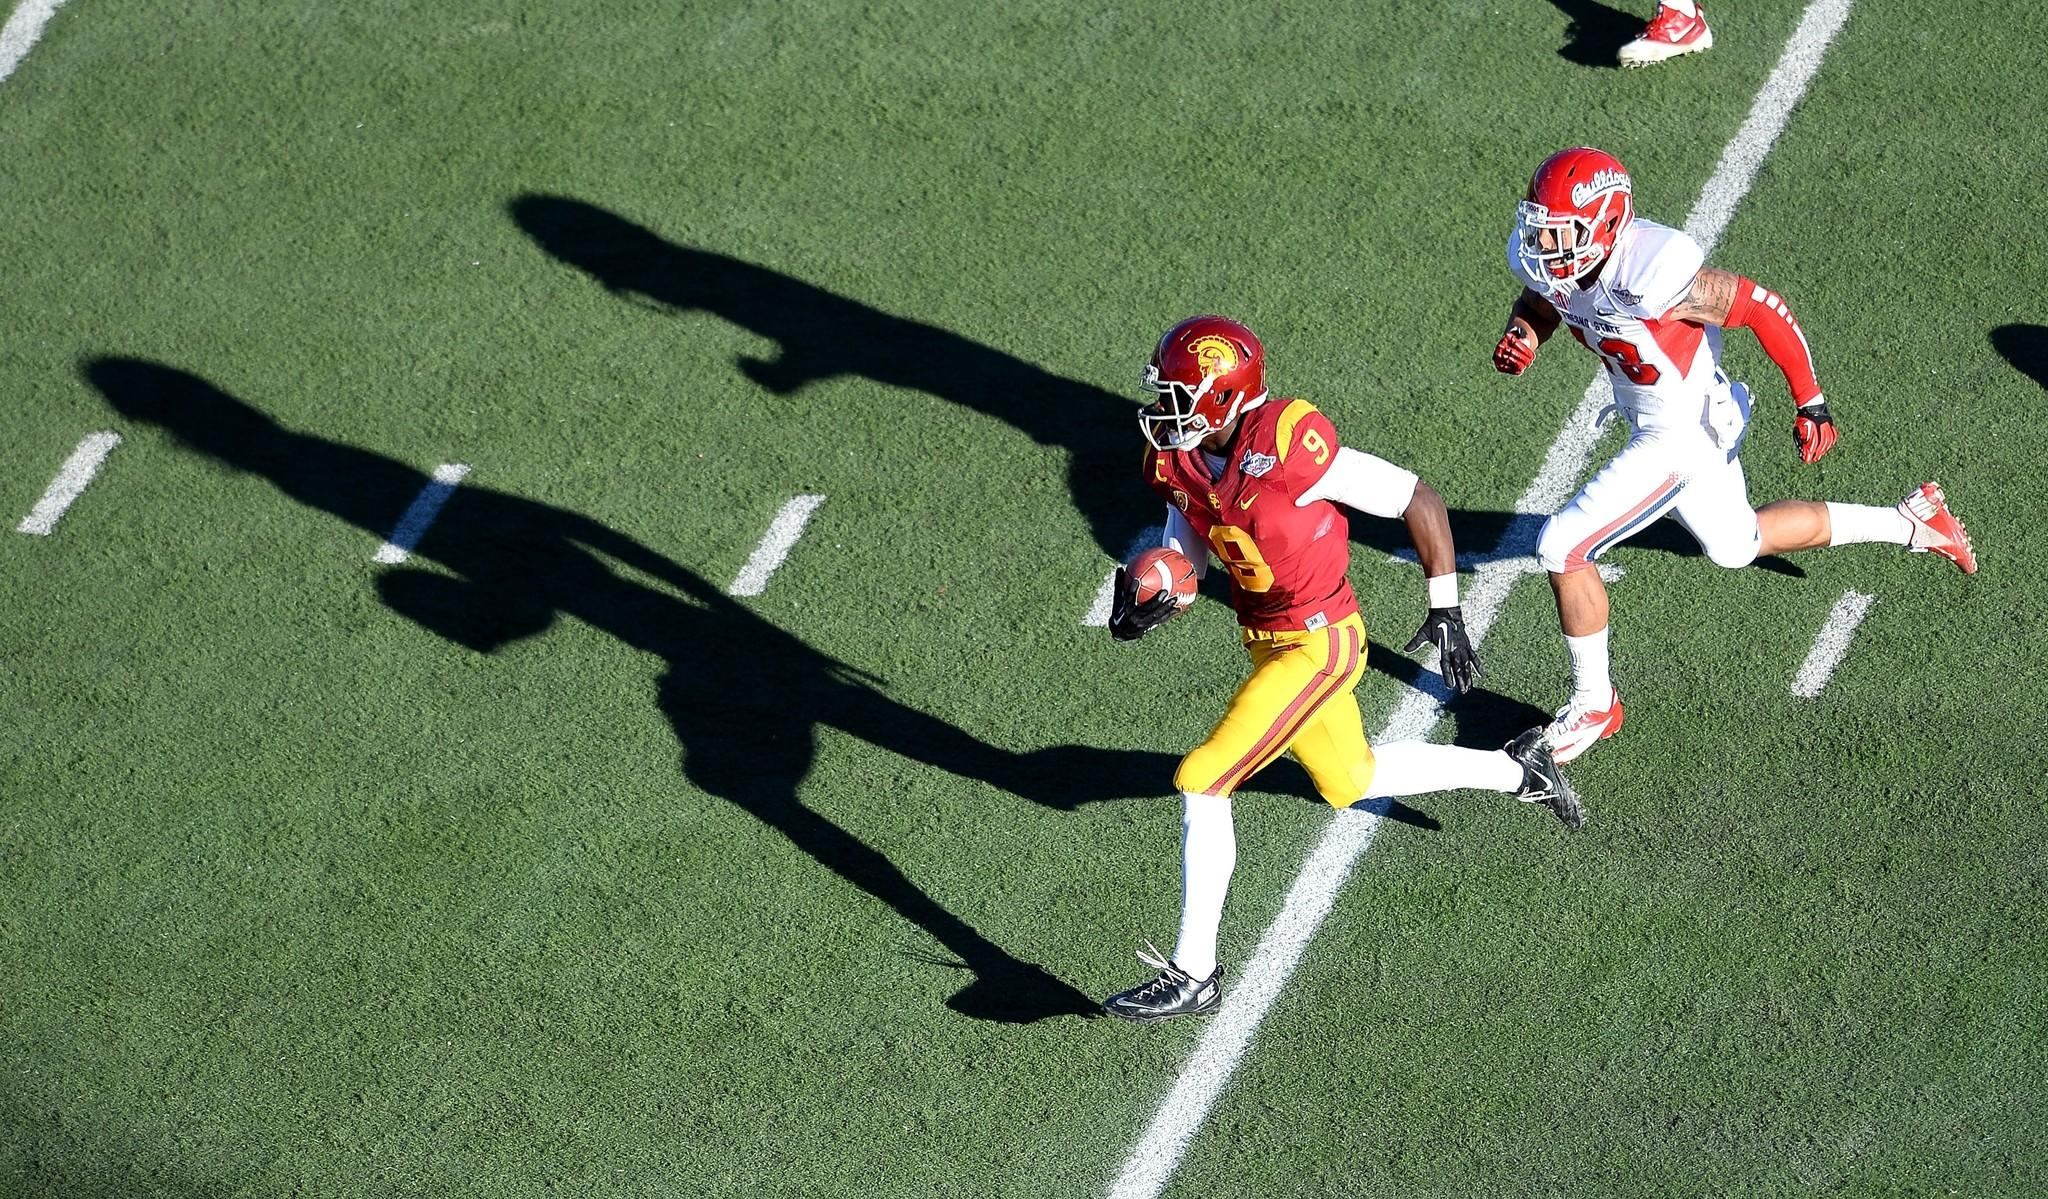 USC's Marqise Lee is one of several promising wide receivers in this year's draft class.